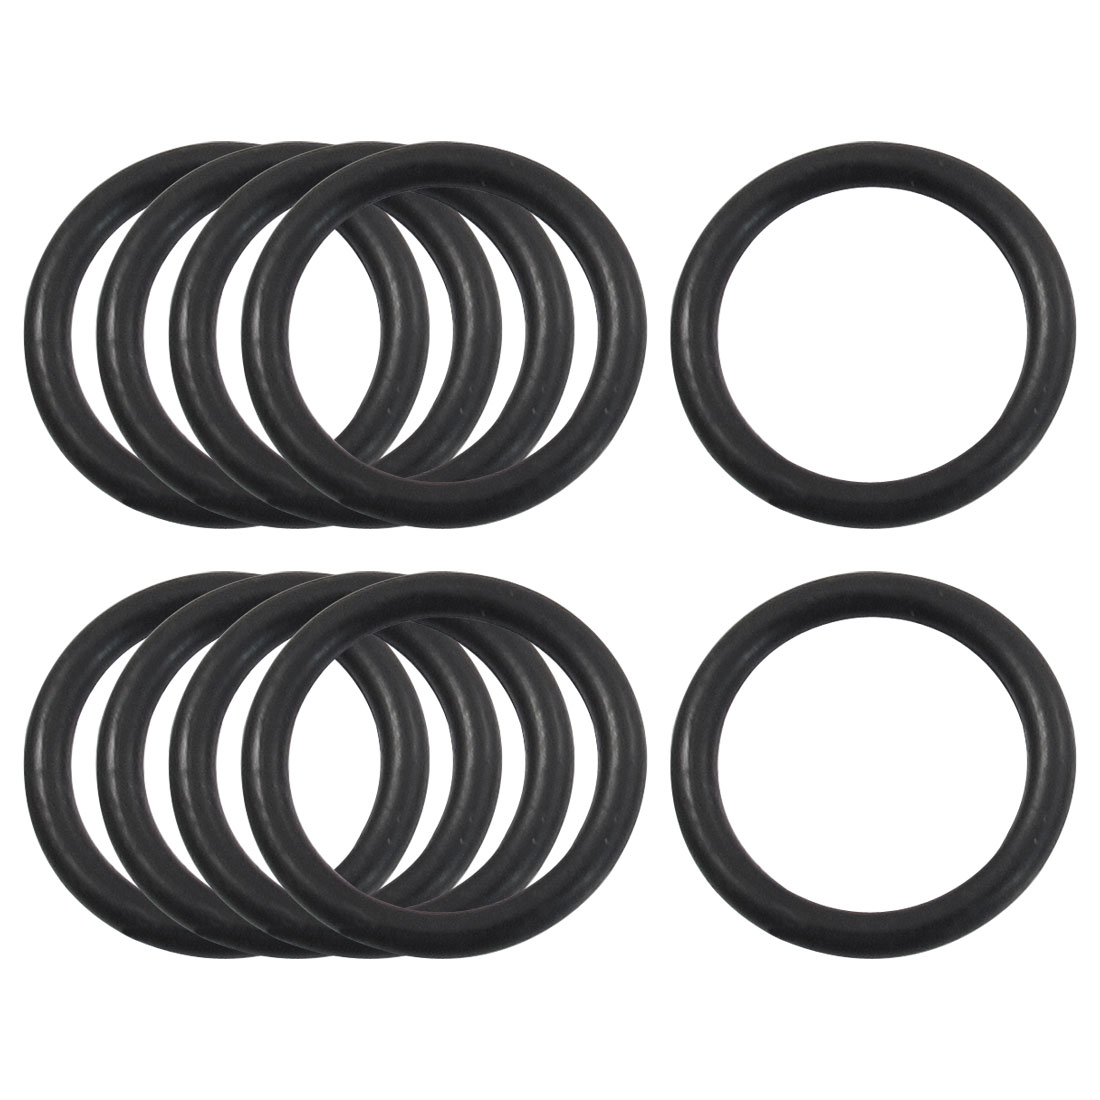 10 Pcs 20m Outside Dia 2.4mm Thick Sealing Oil Filter O Rings Gaskets